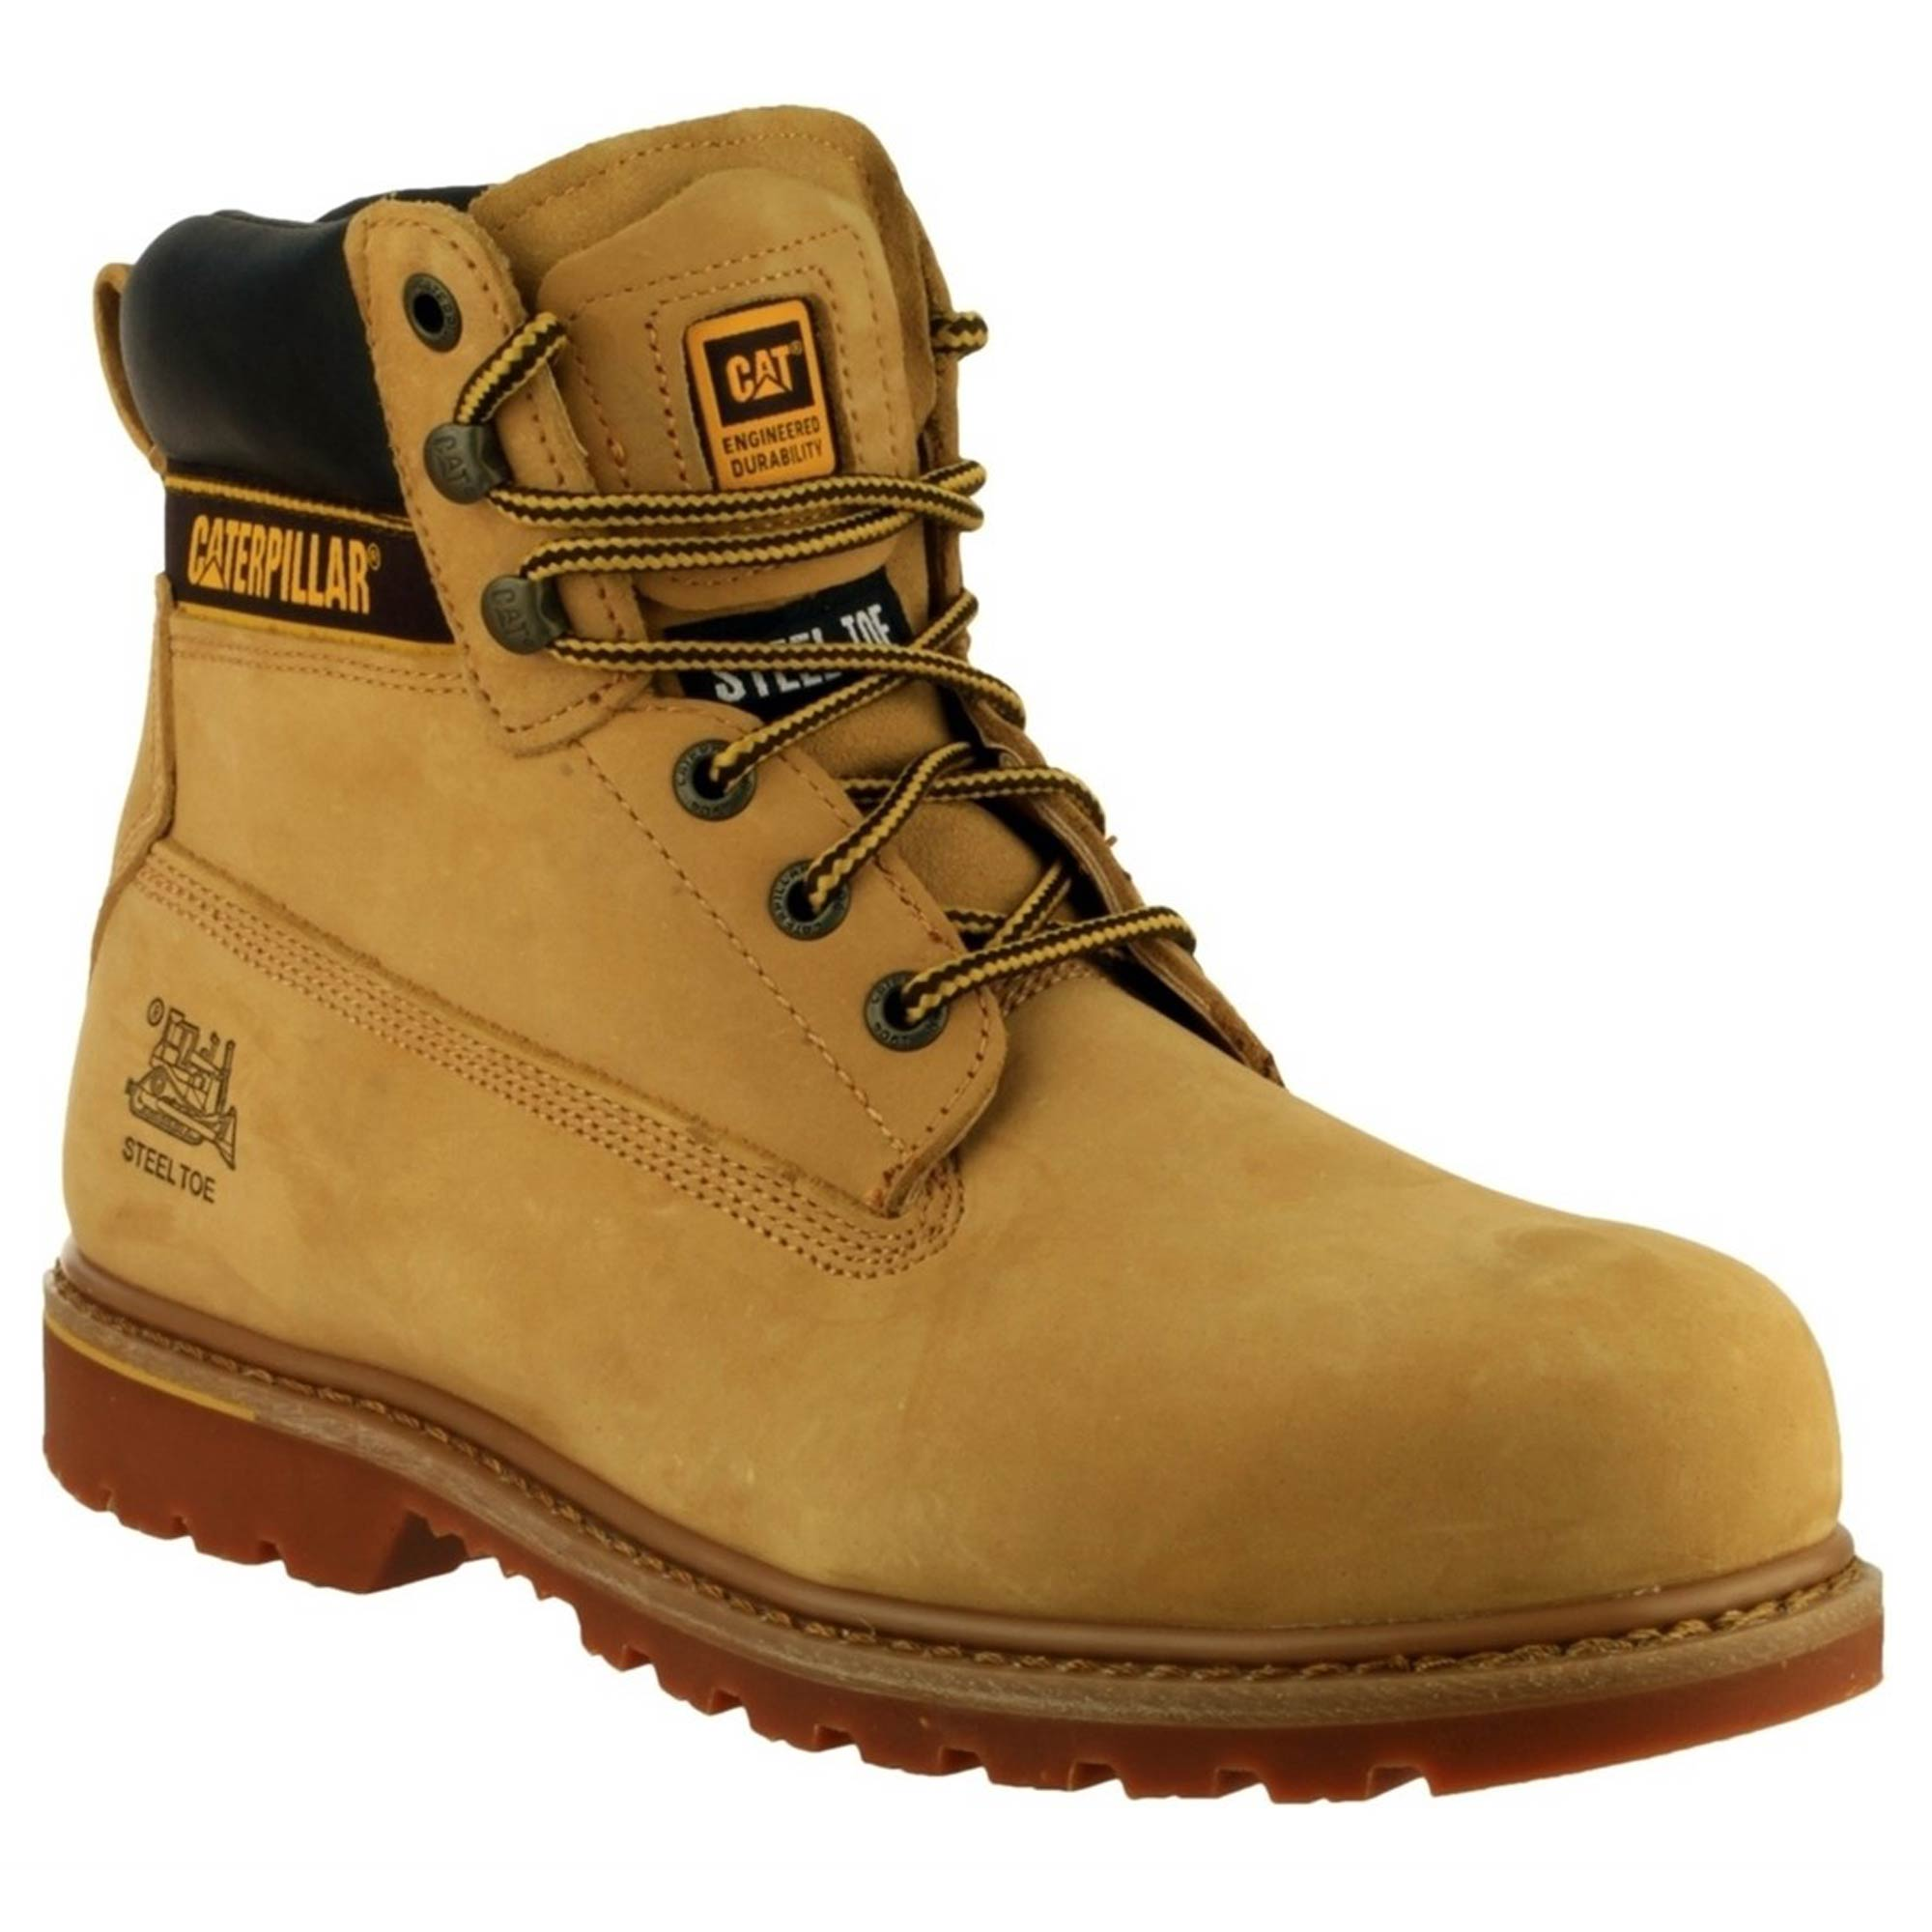 Cat Holtonhn Caterpillar Holton Safety Boots Honey